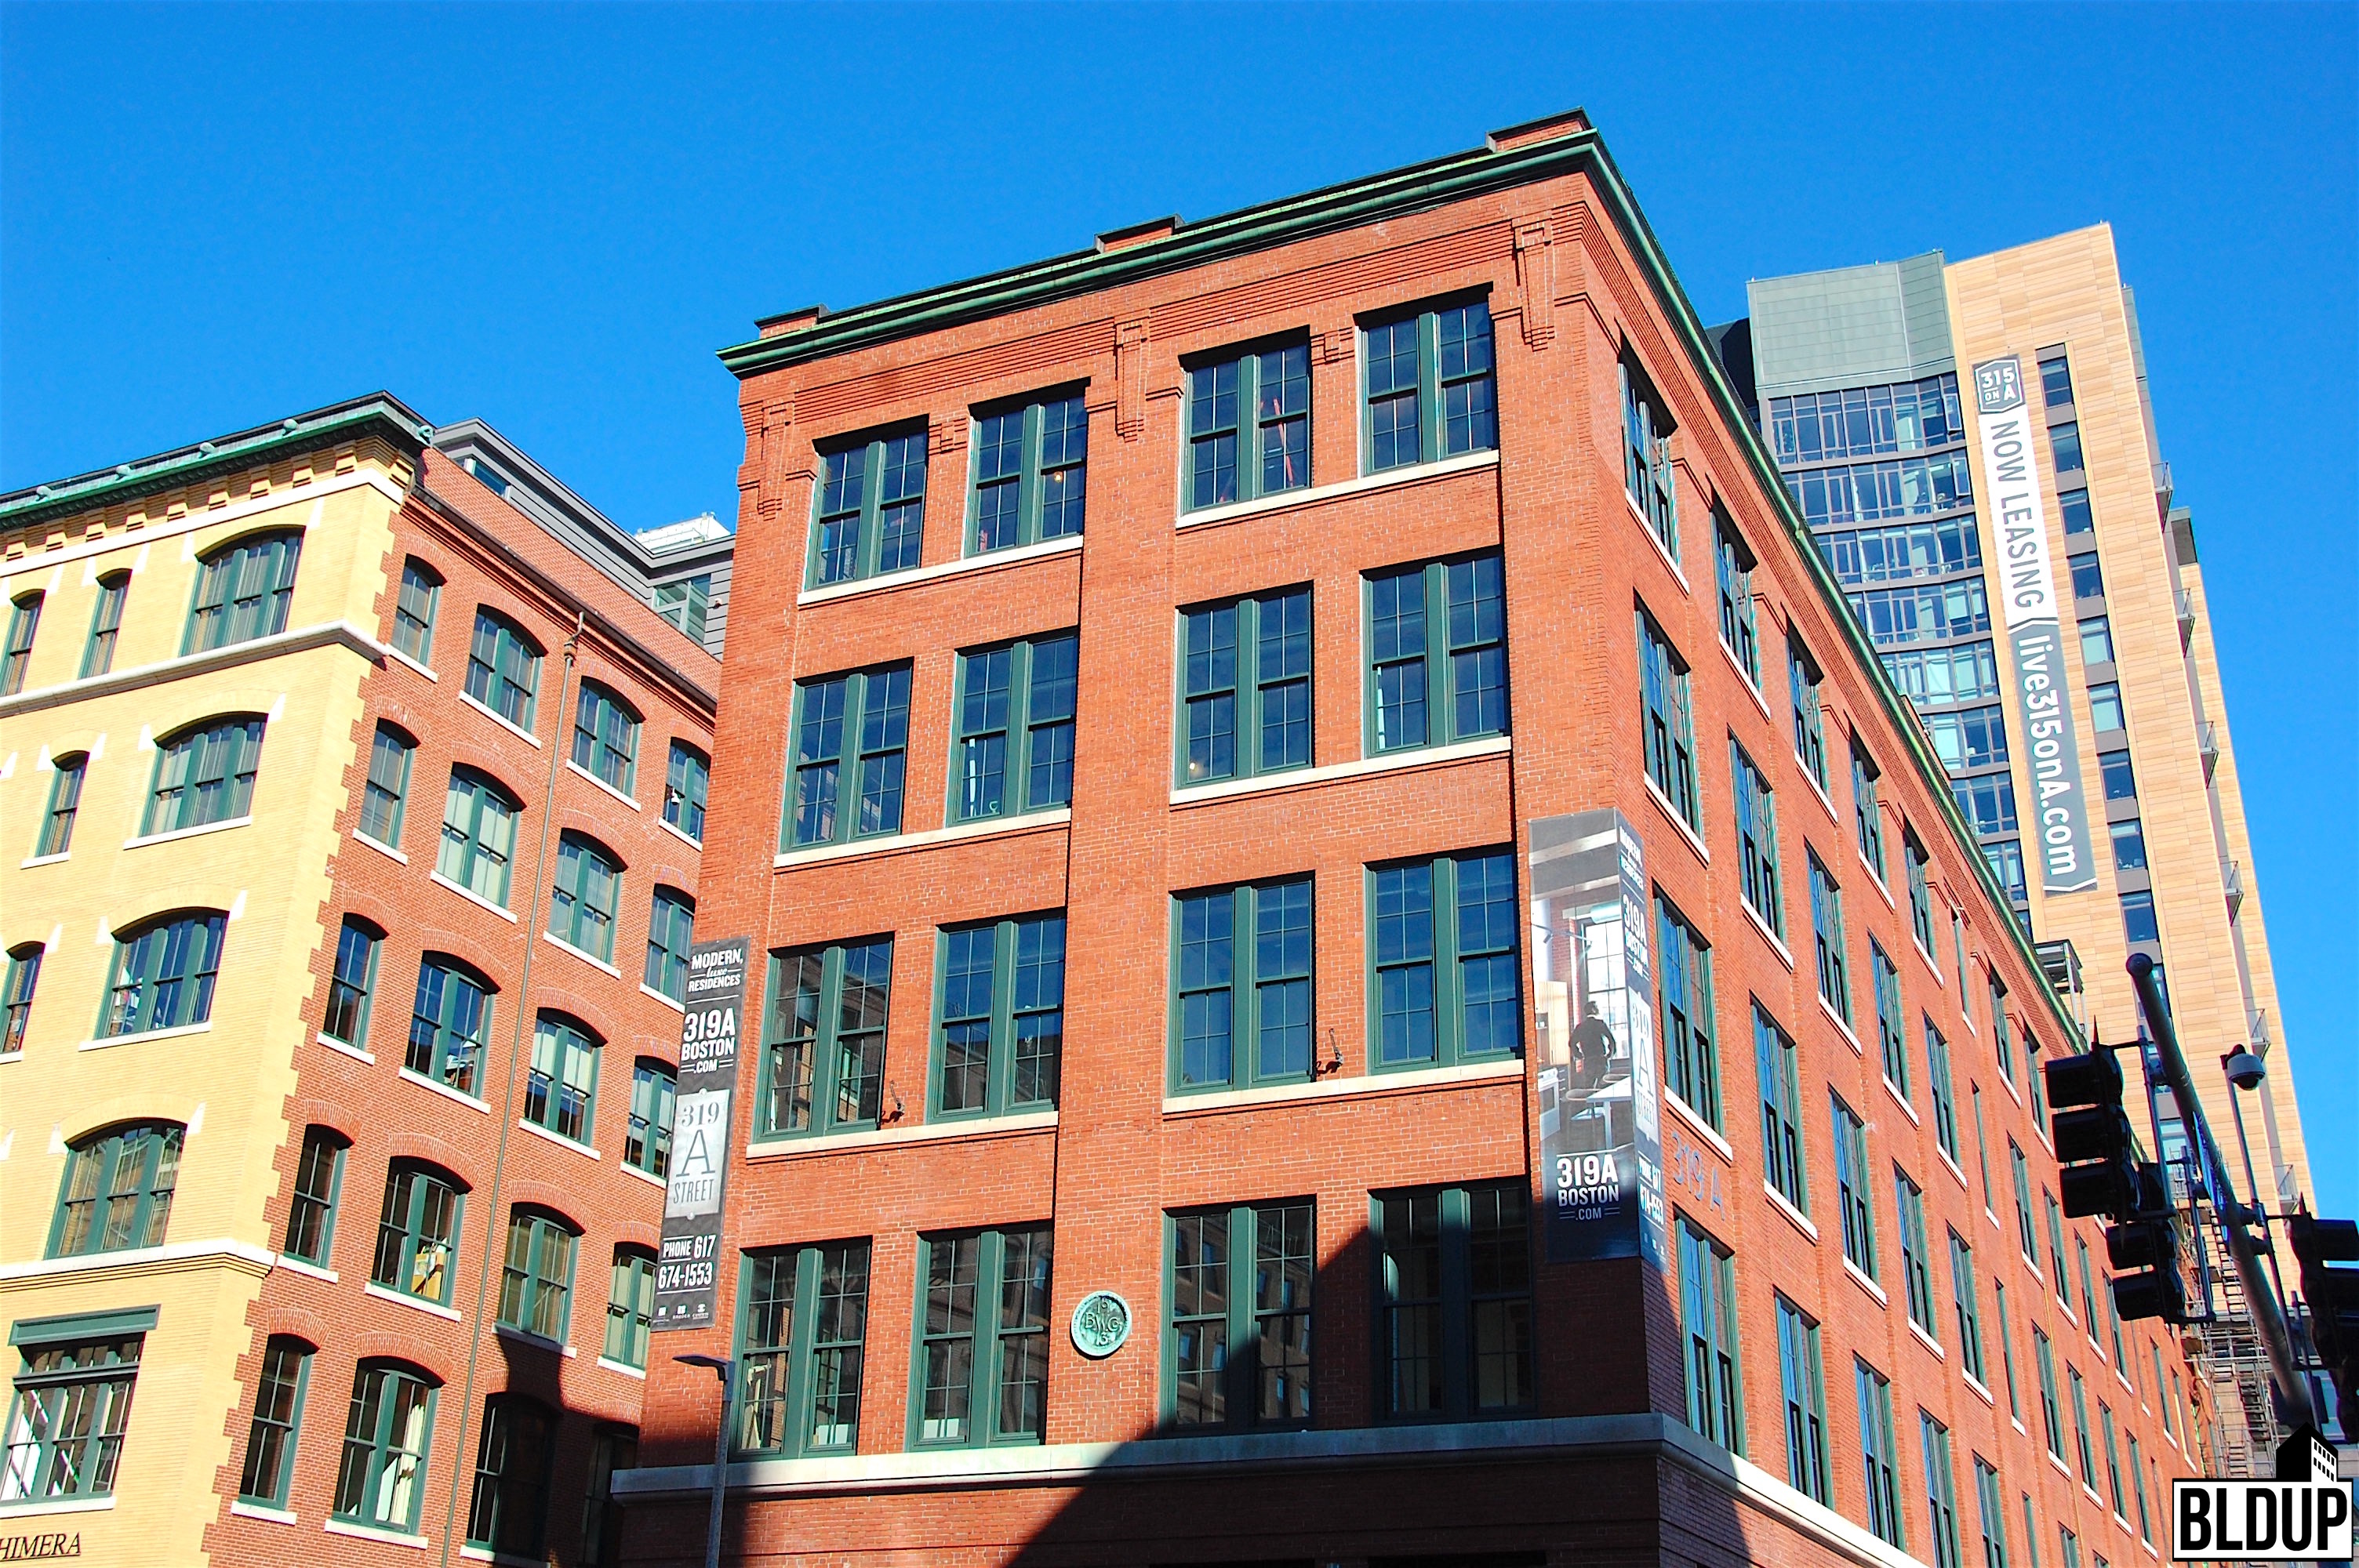 319 A Street Fort Point South Boston Waterfront Southie Residential  Condominium 48 Luxury Building Boston Residential